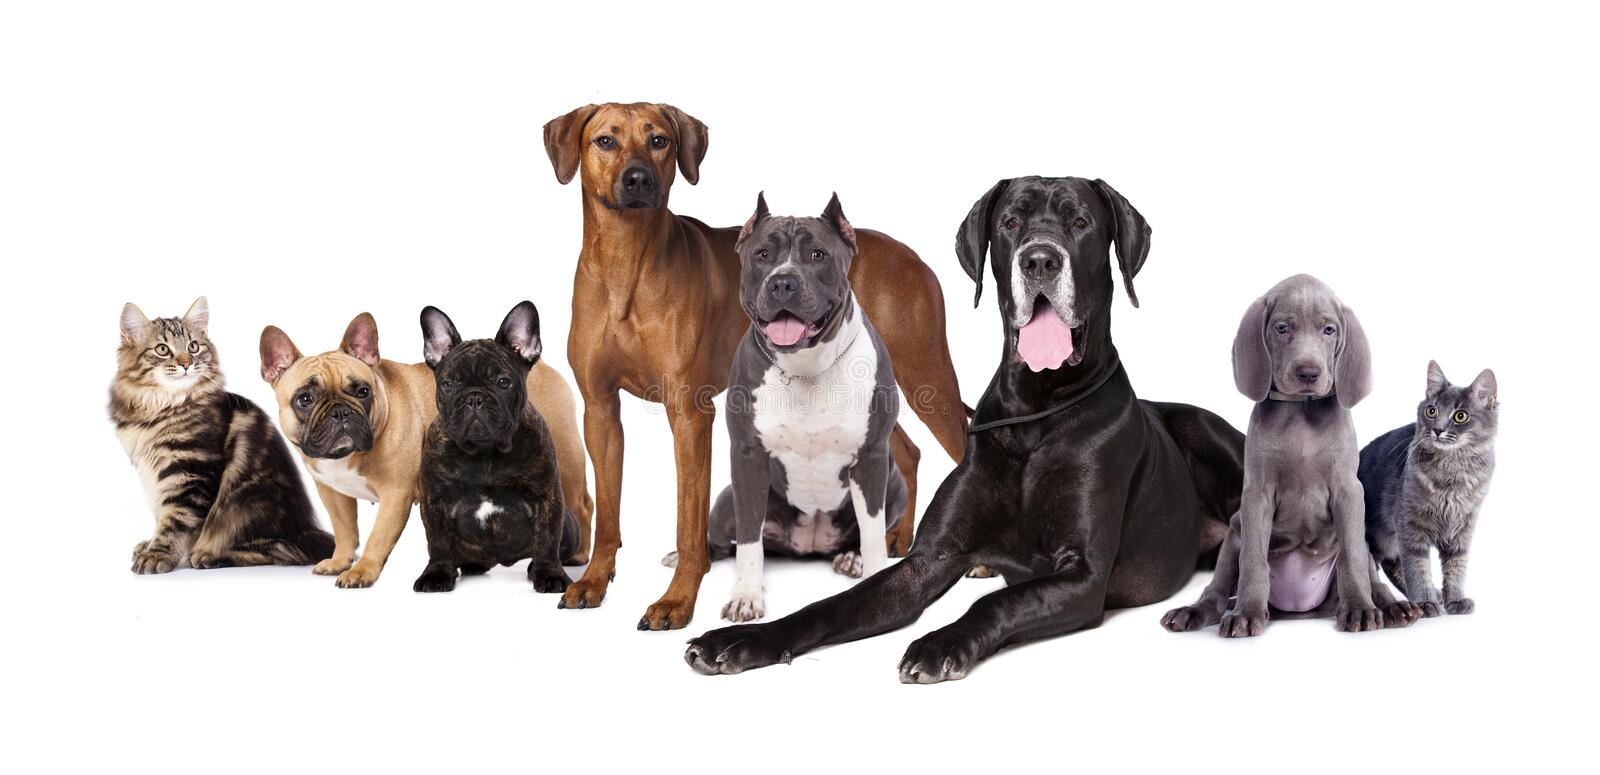 Dogs   and cats. Group of Dogs   and cats on a white background